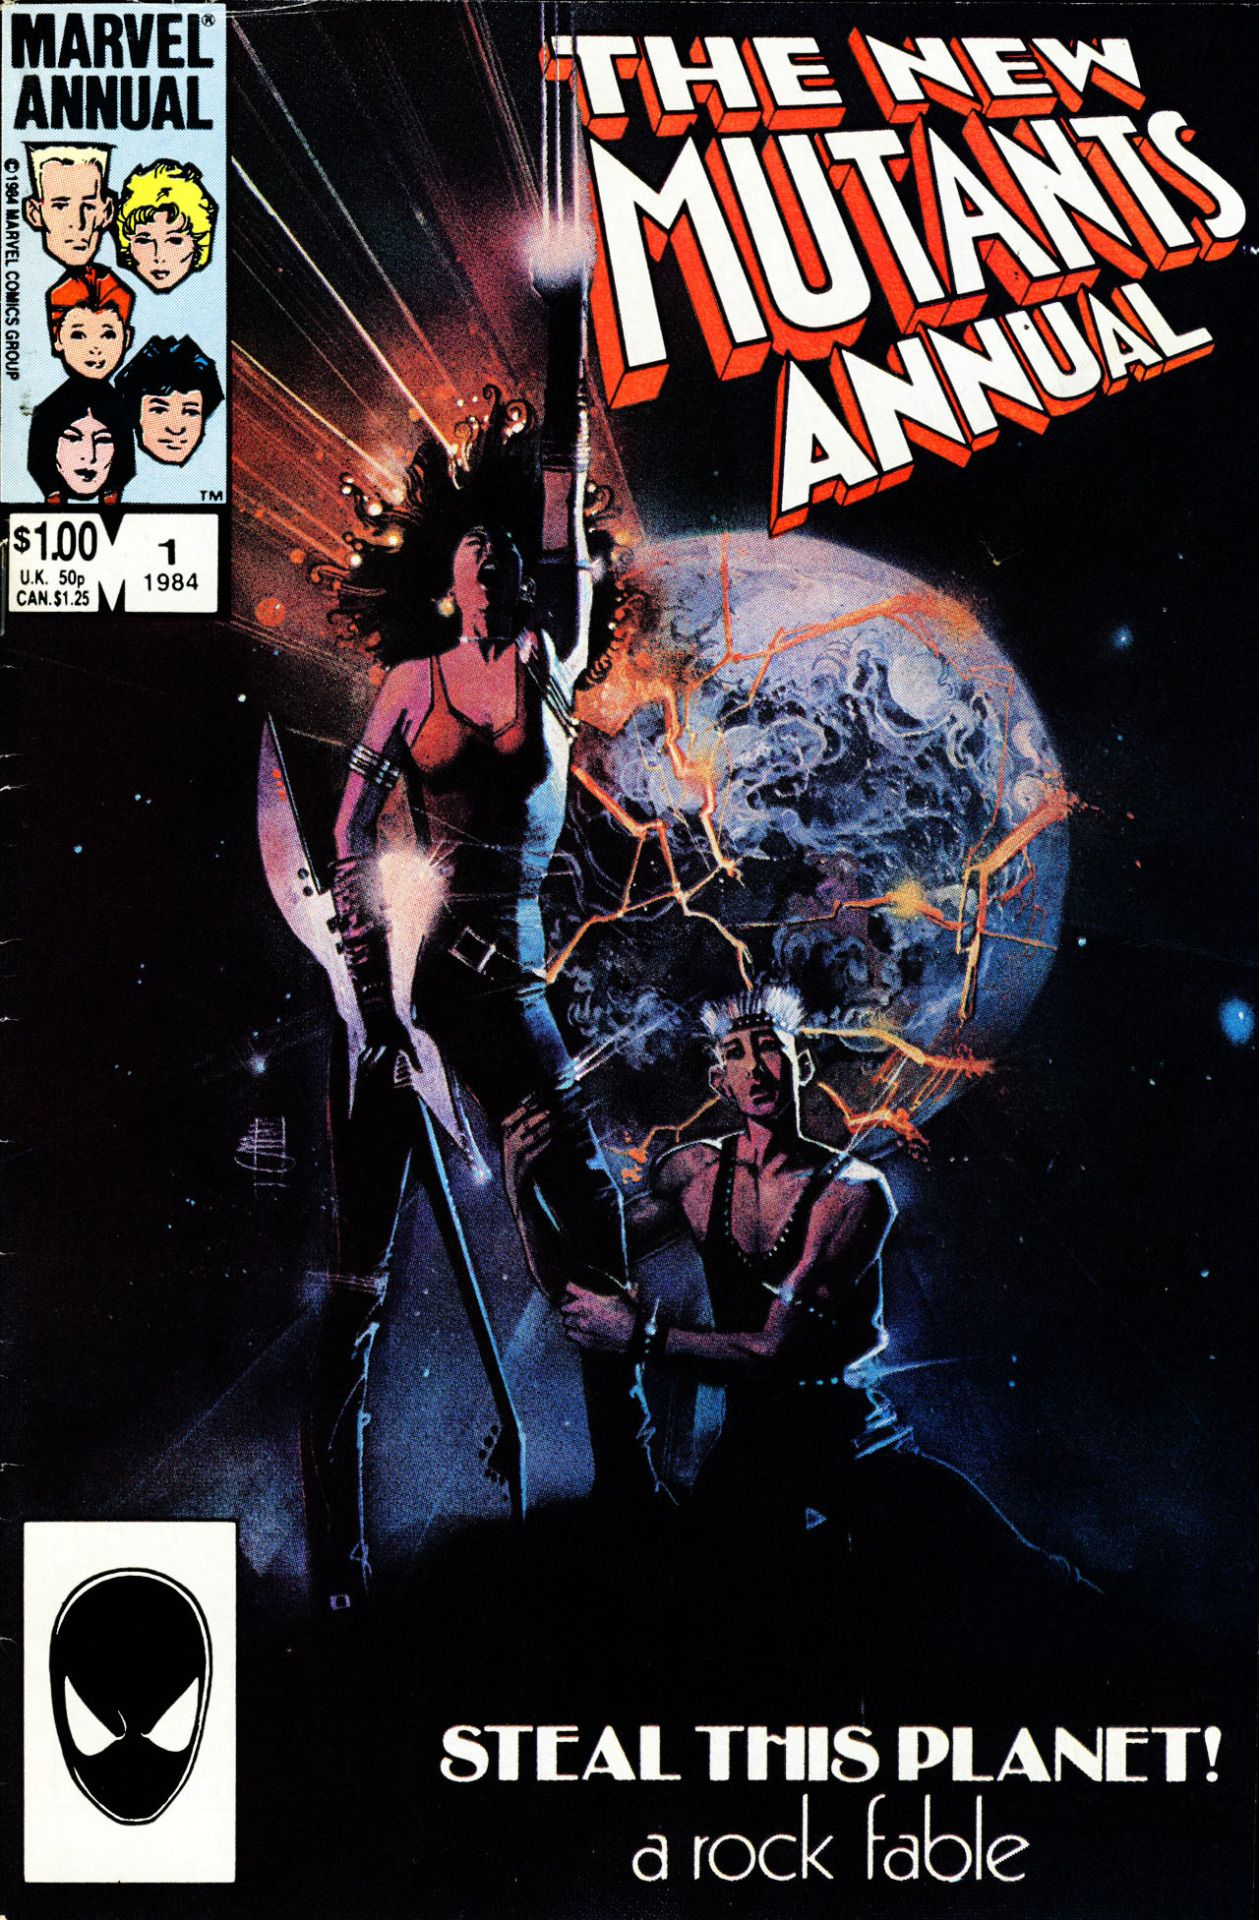 """""""Steal this planet!"""" - The New Mutants Annual #1, 1984, cover by Bill Sienkiewicz"""